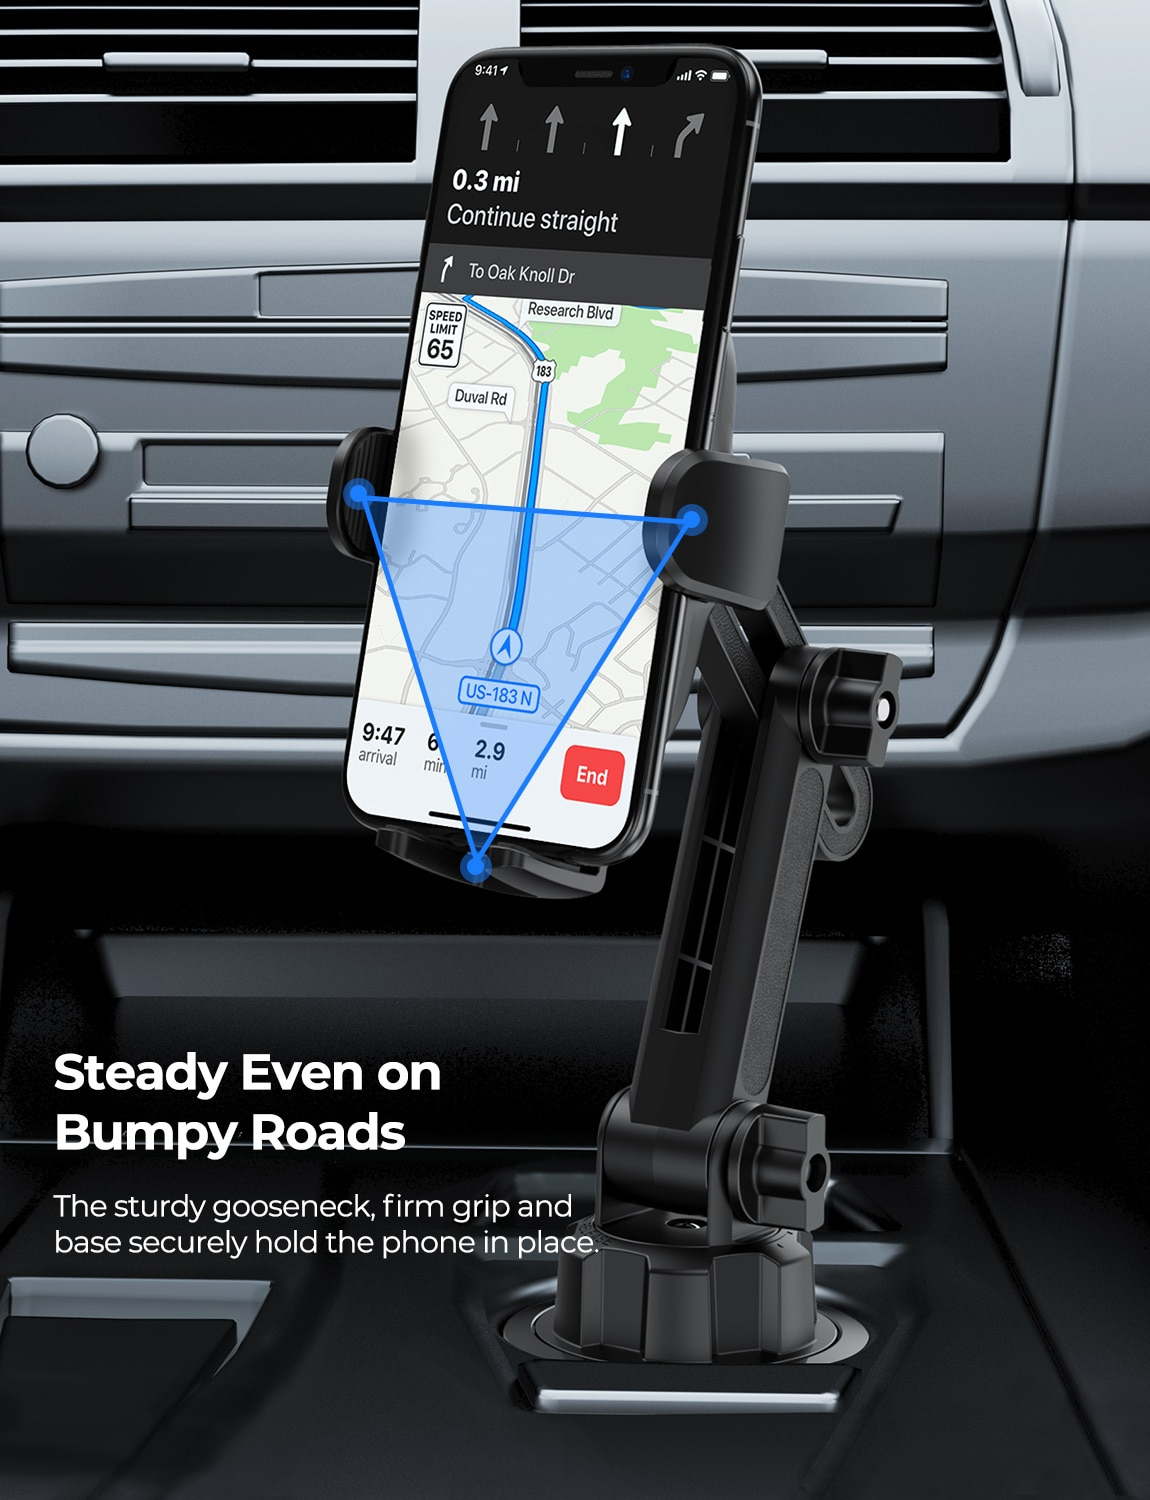 He7bb07f7f67648e392d50b4af3725adee - MPOW CA158 Phone Mount Adjustable Cup Holder Car Mount with Long Gooseneck 360 Degrees Rotation Compatible with iPhone Galaxy